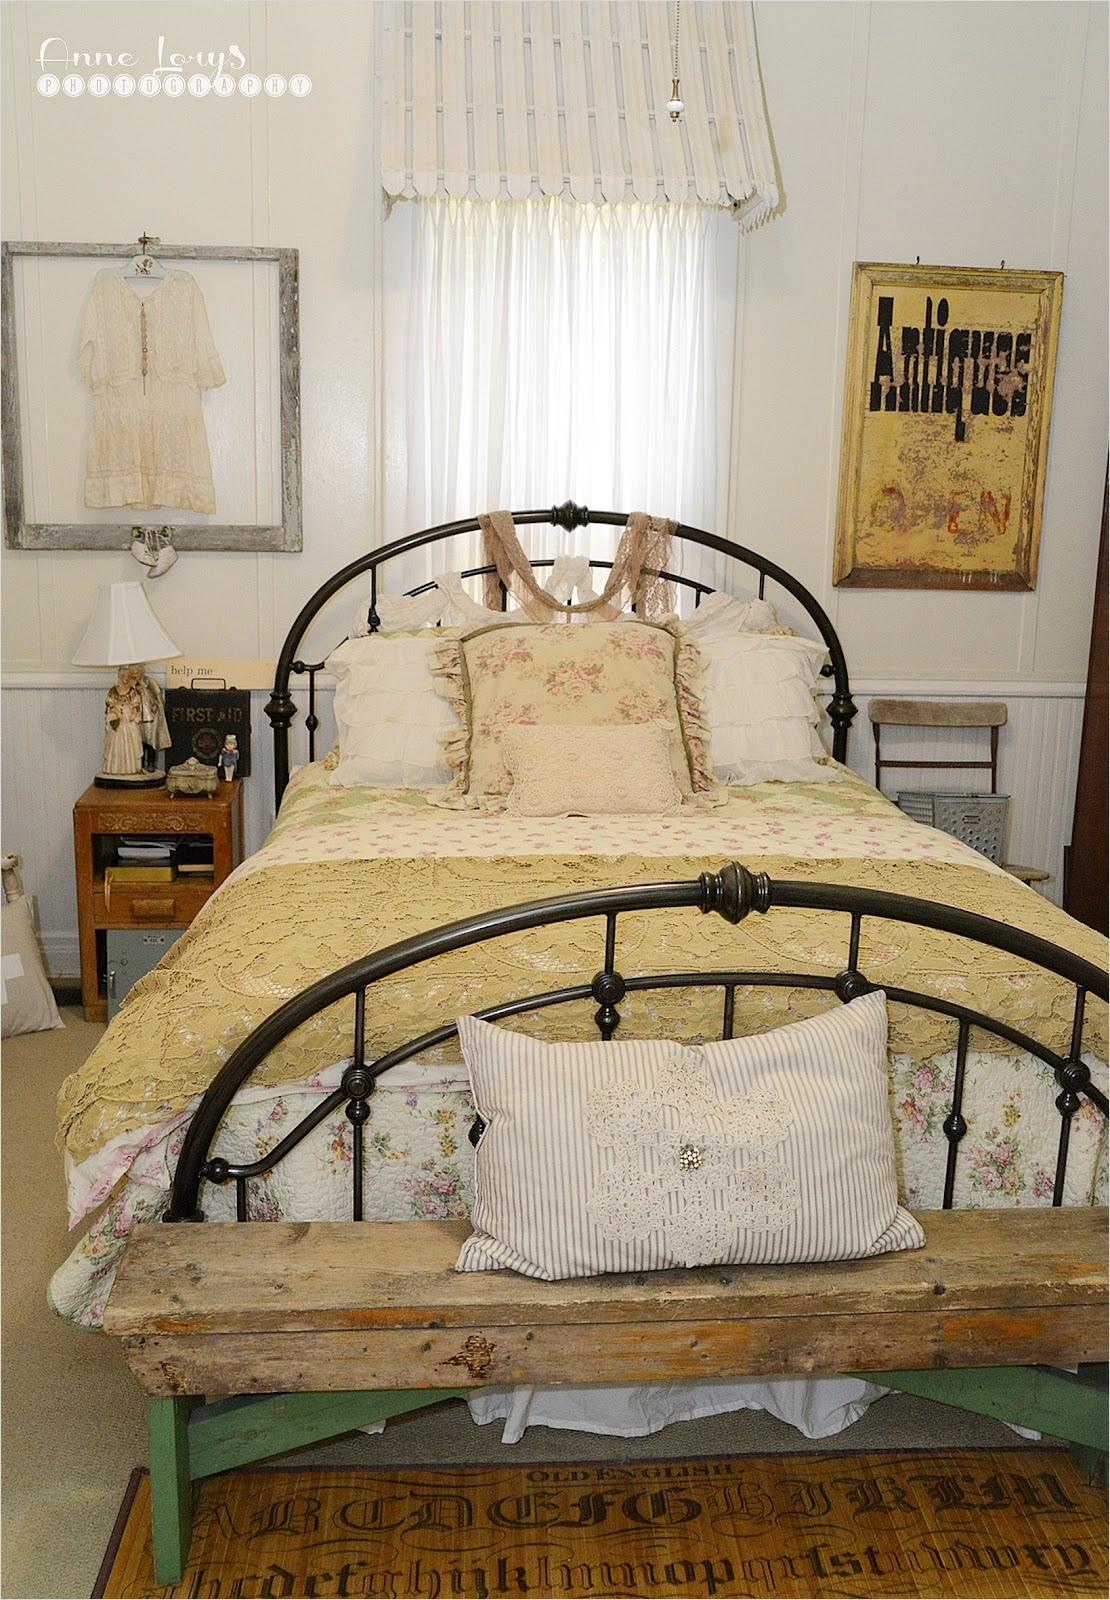 43 Stunning Country Farmhouse Bedroom Ideas 93 Fiona and Twig Farmhouse Bedroom 4